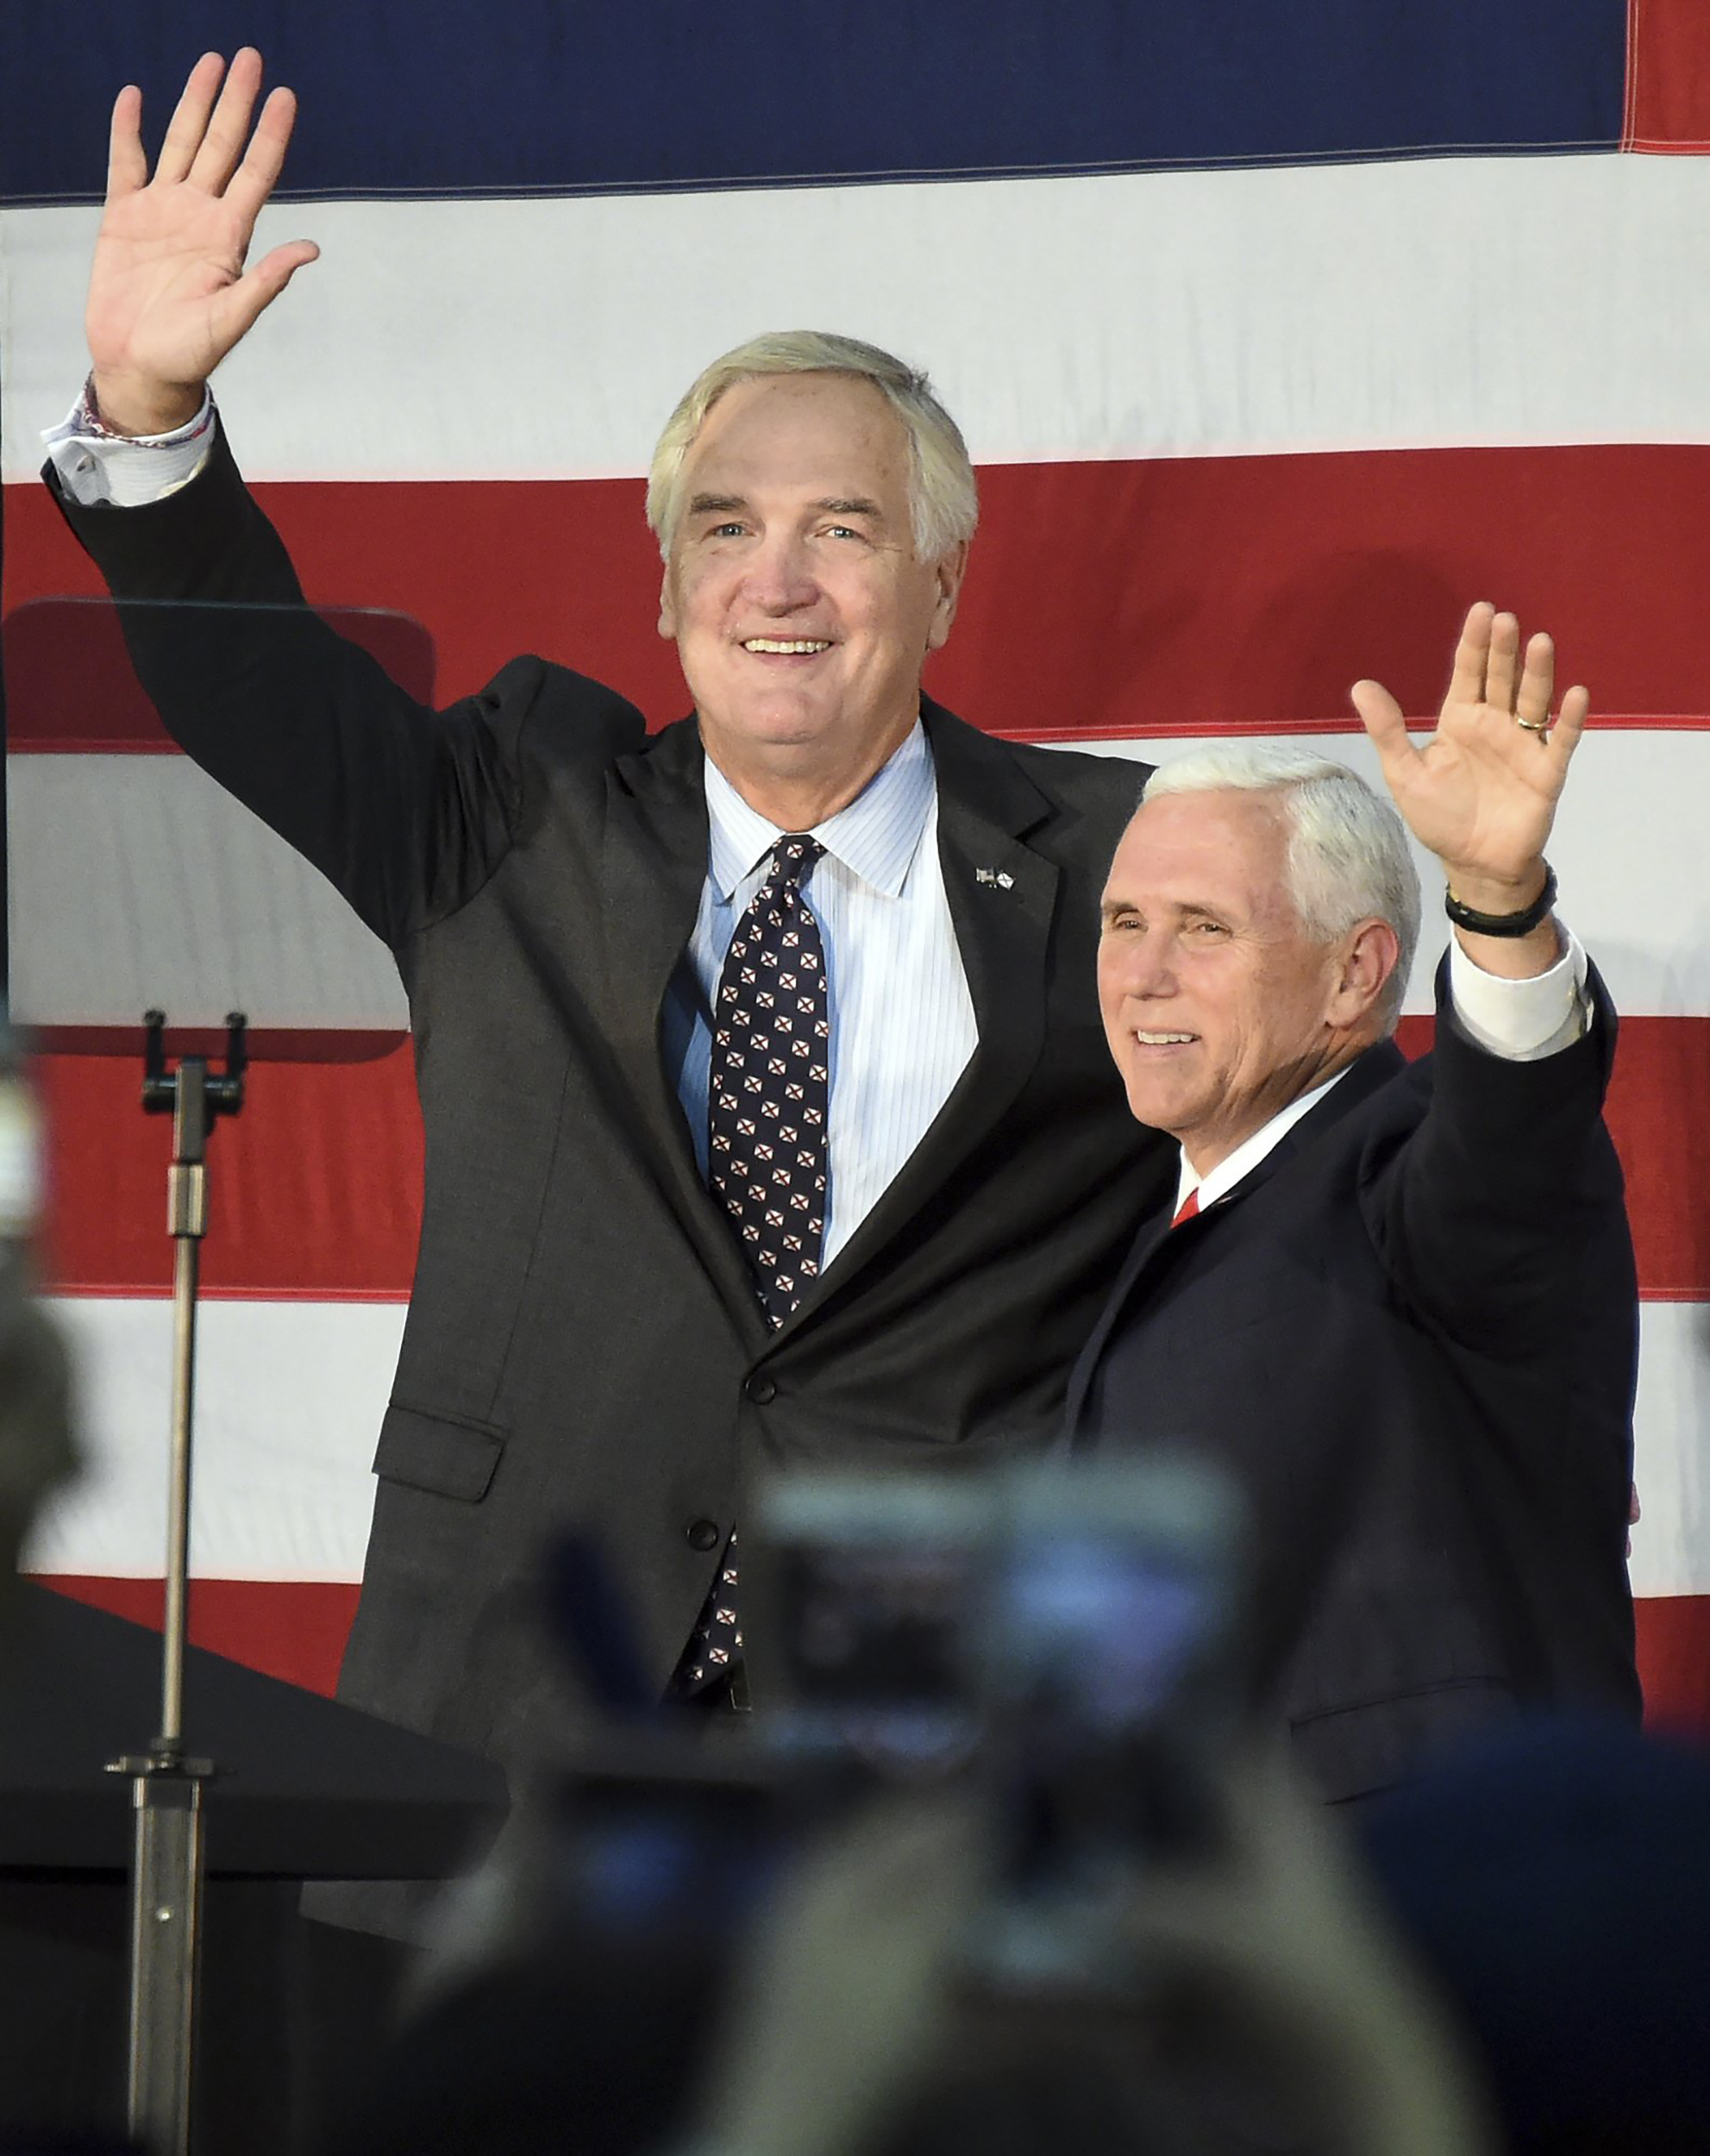 Image: Vice President Mike Pence campaigning for Sen. Luther Strange in Alabama.